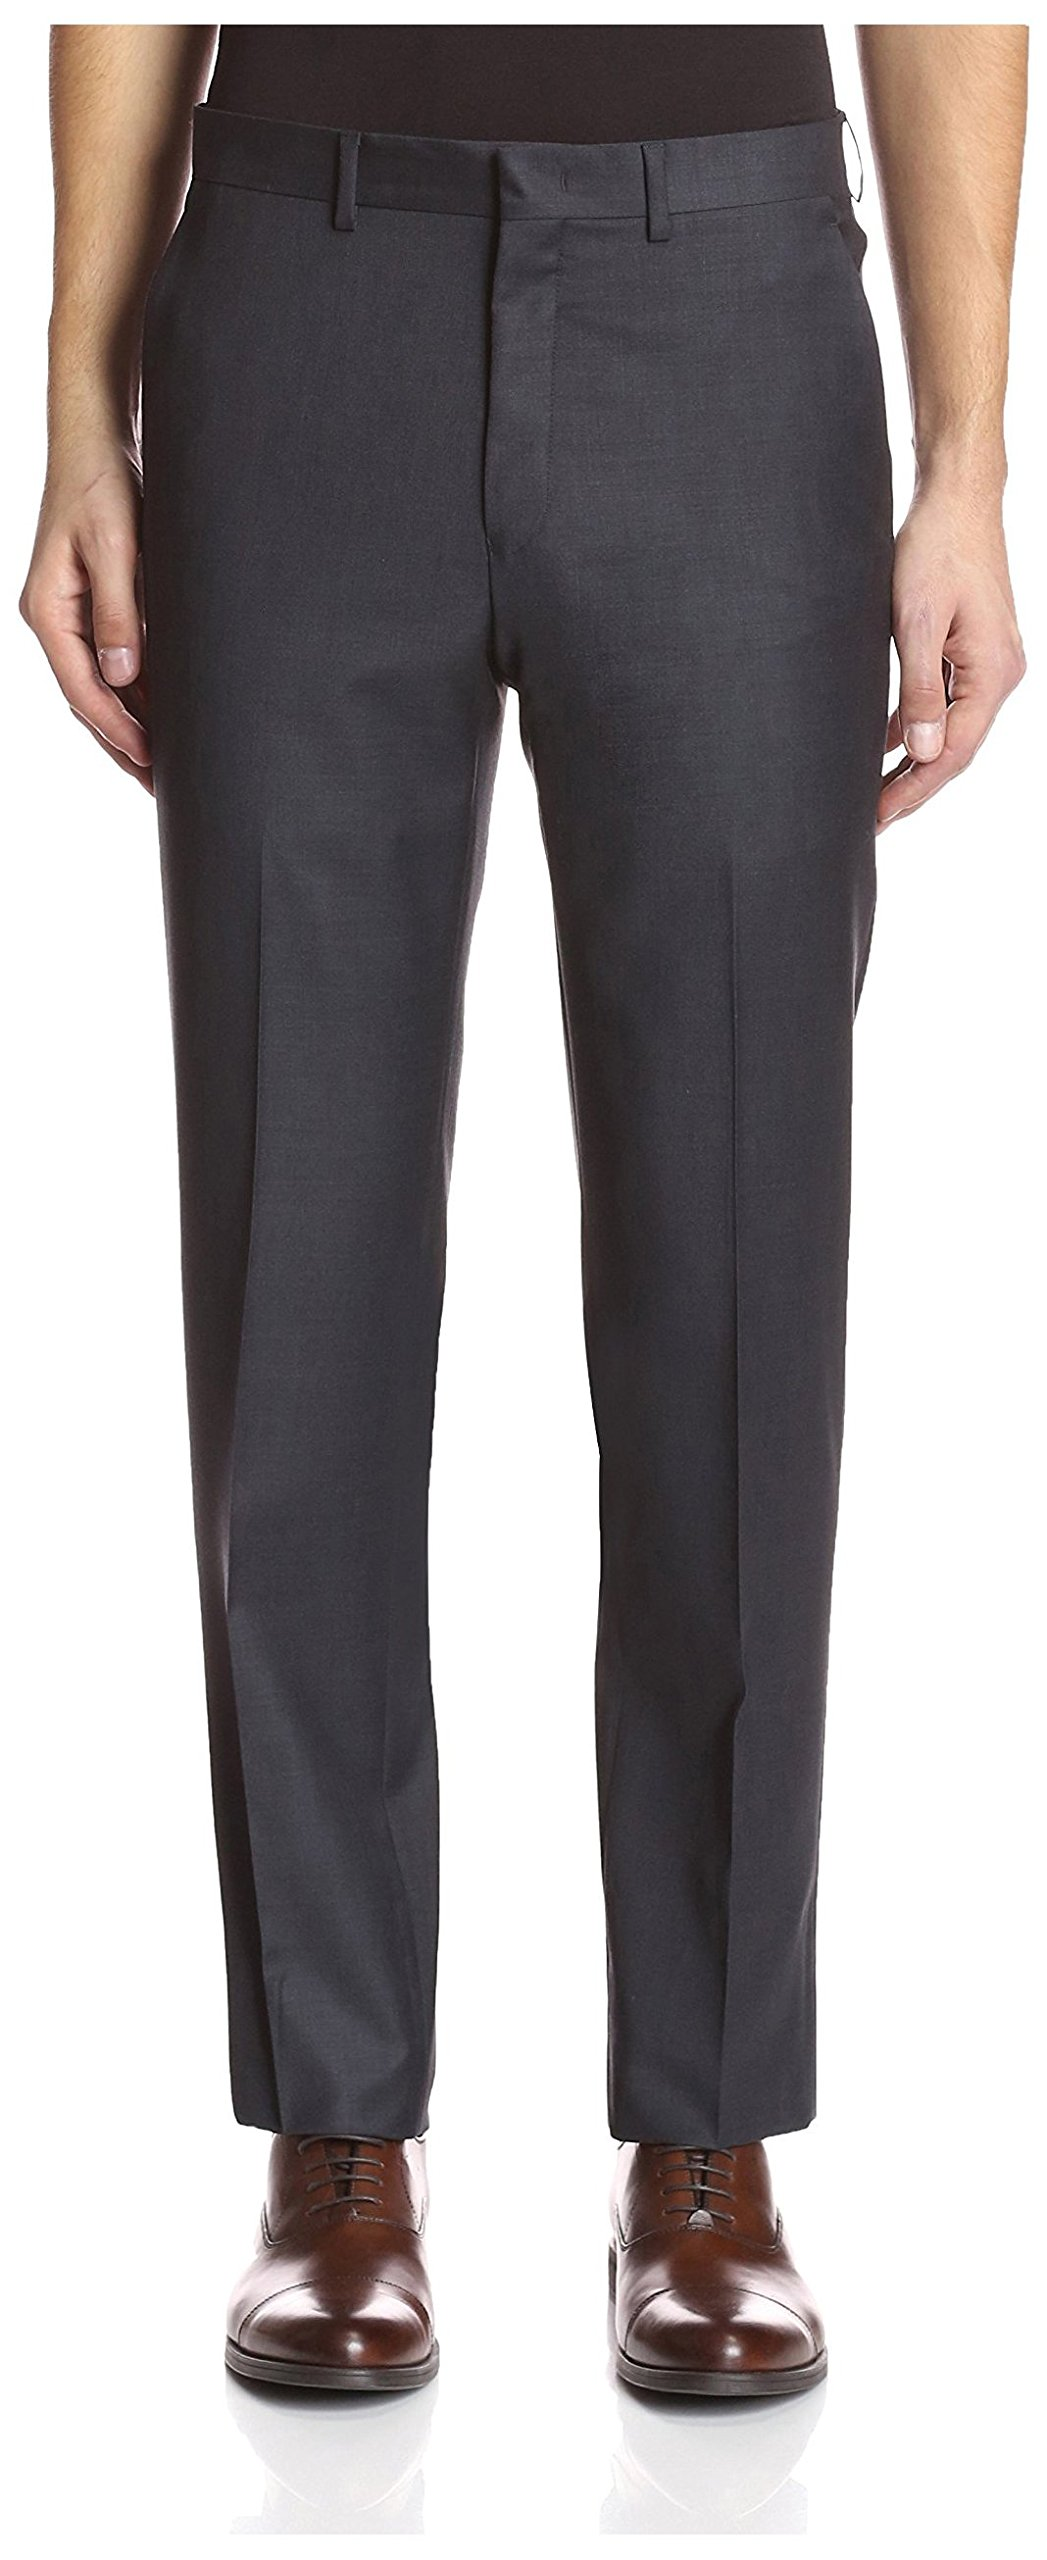 Franklin Tailored Men's Solid Trousers, Dark Grey, 34 US